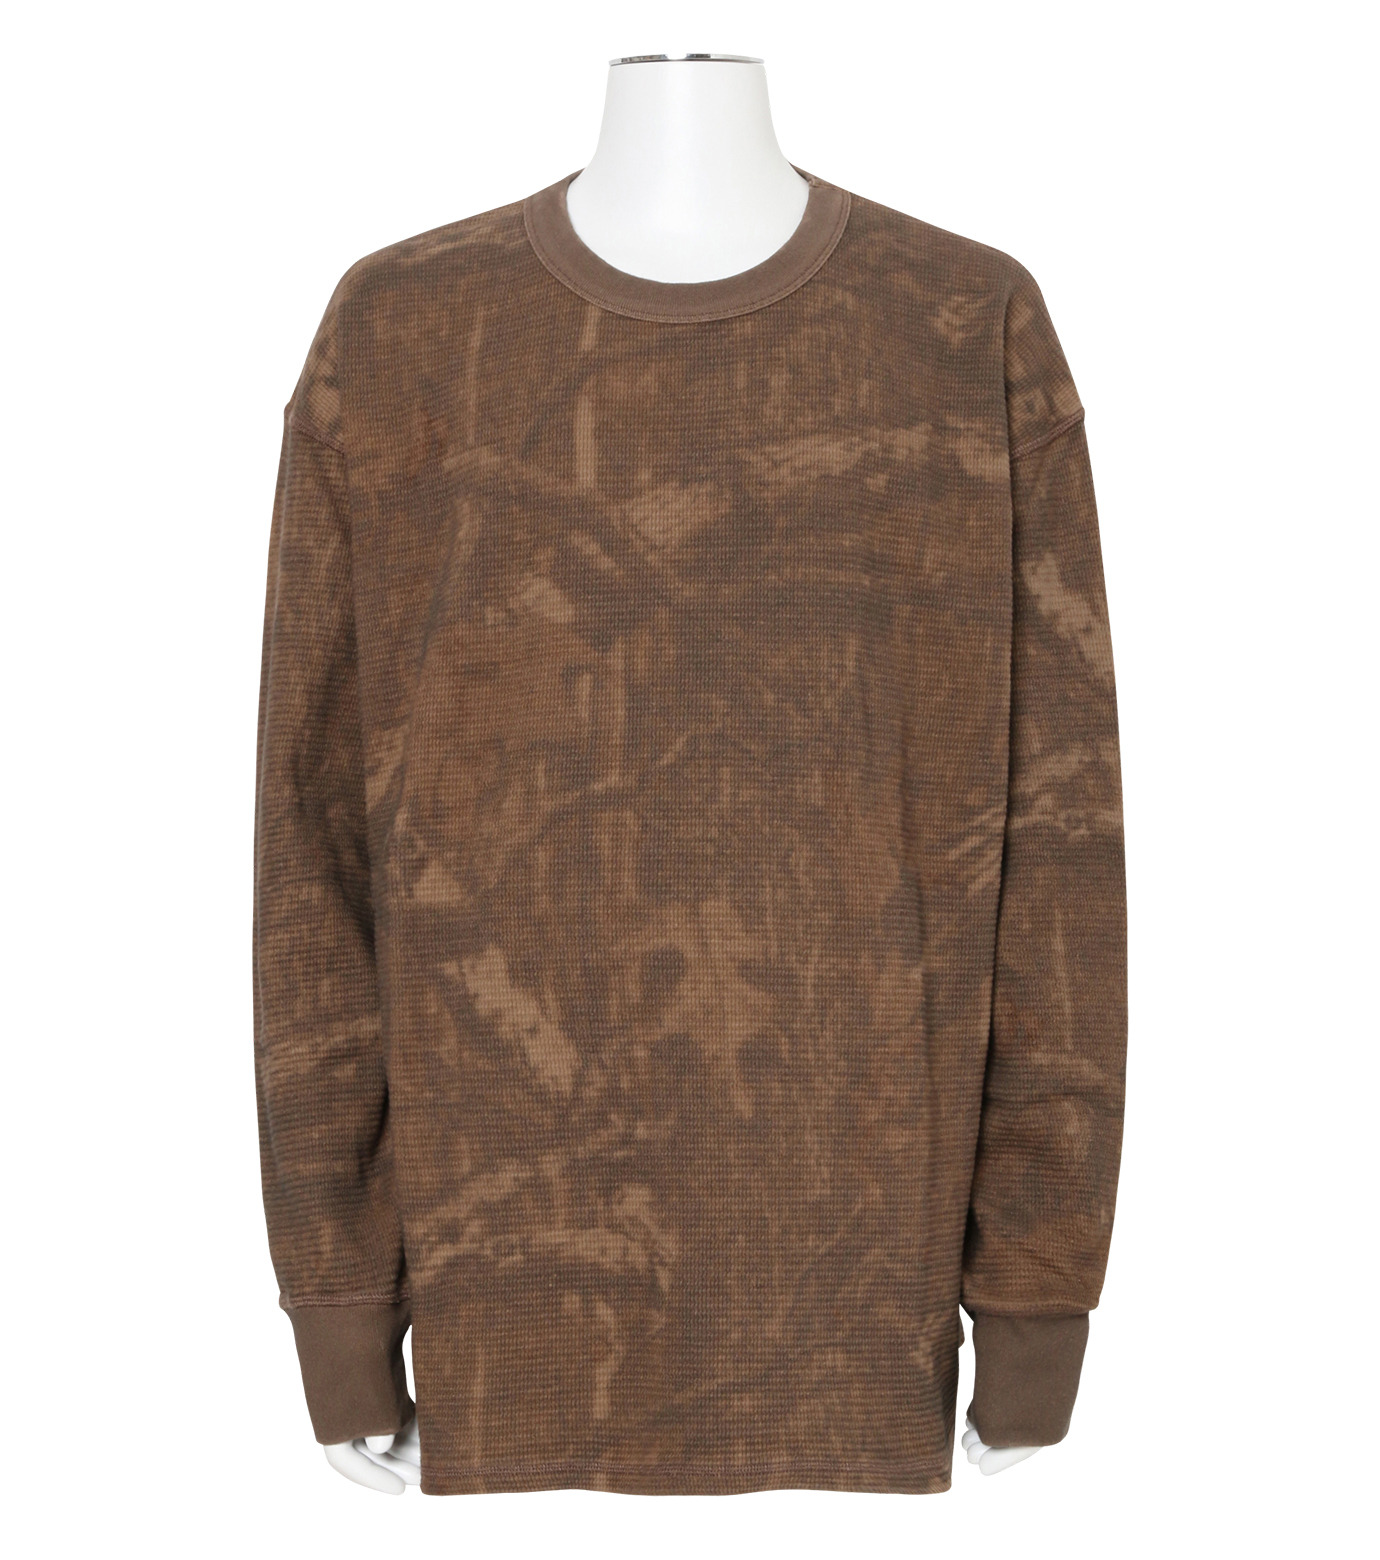 YEEZY(イージー)のTHERMAL LONG SLEEVE-KHAKI(カットソー/cut and sewn)-KW3M103-117-24 拡大詳細画像1